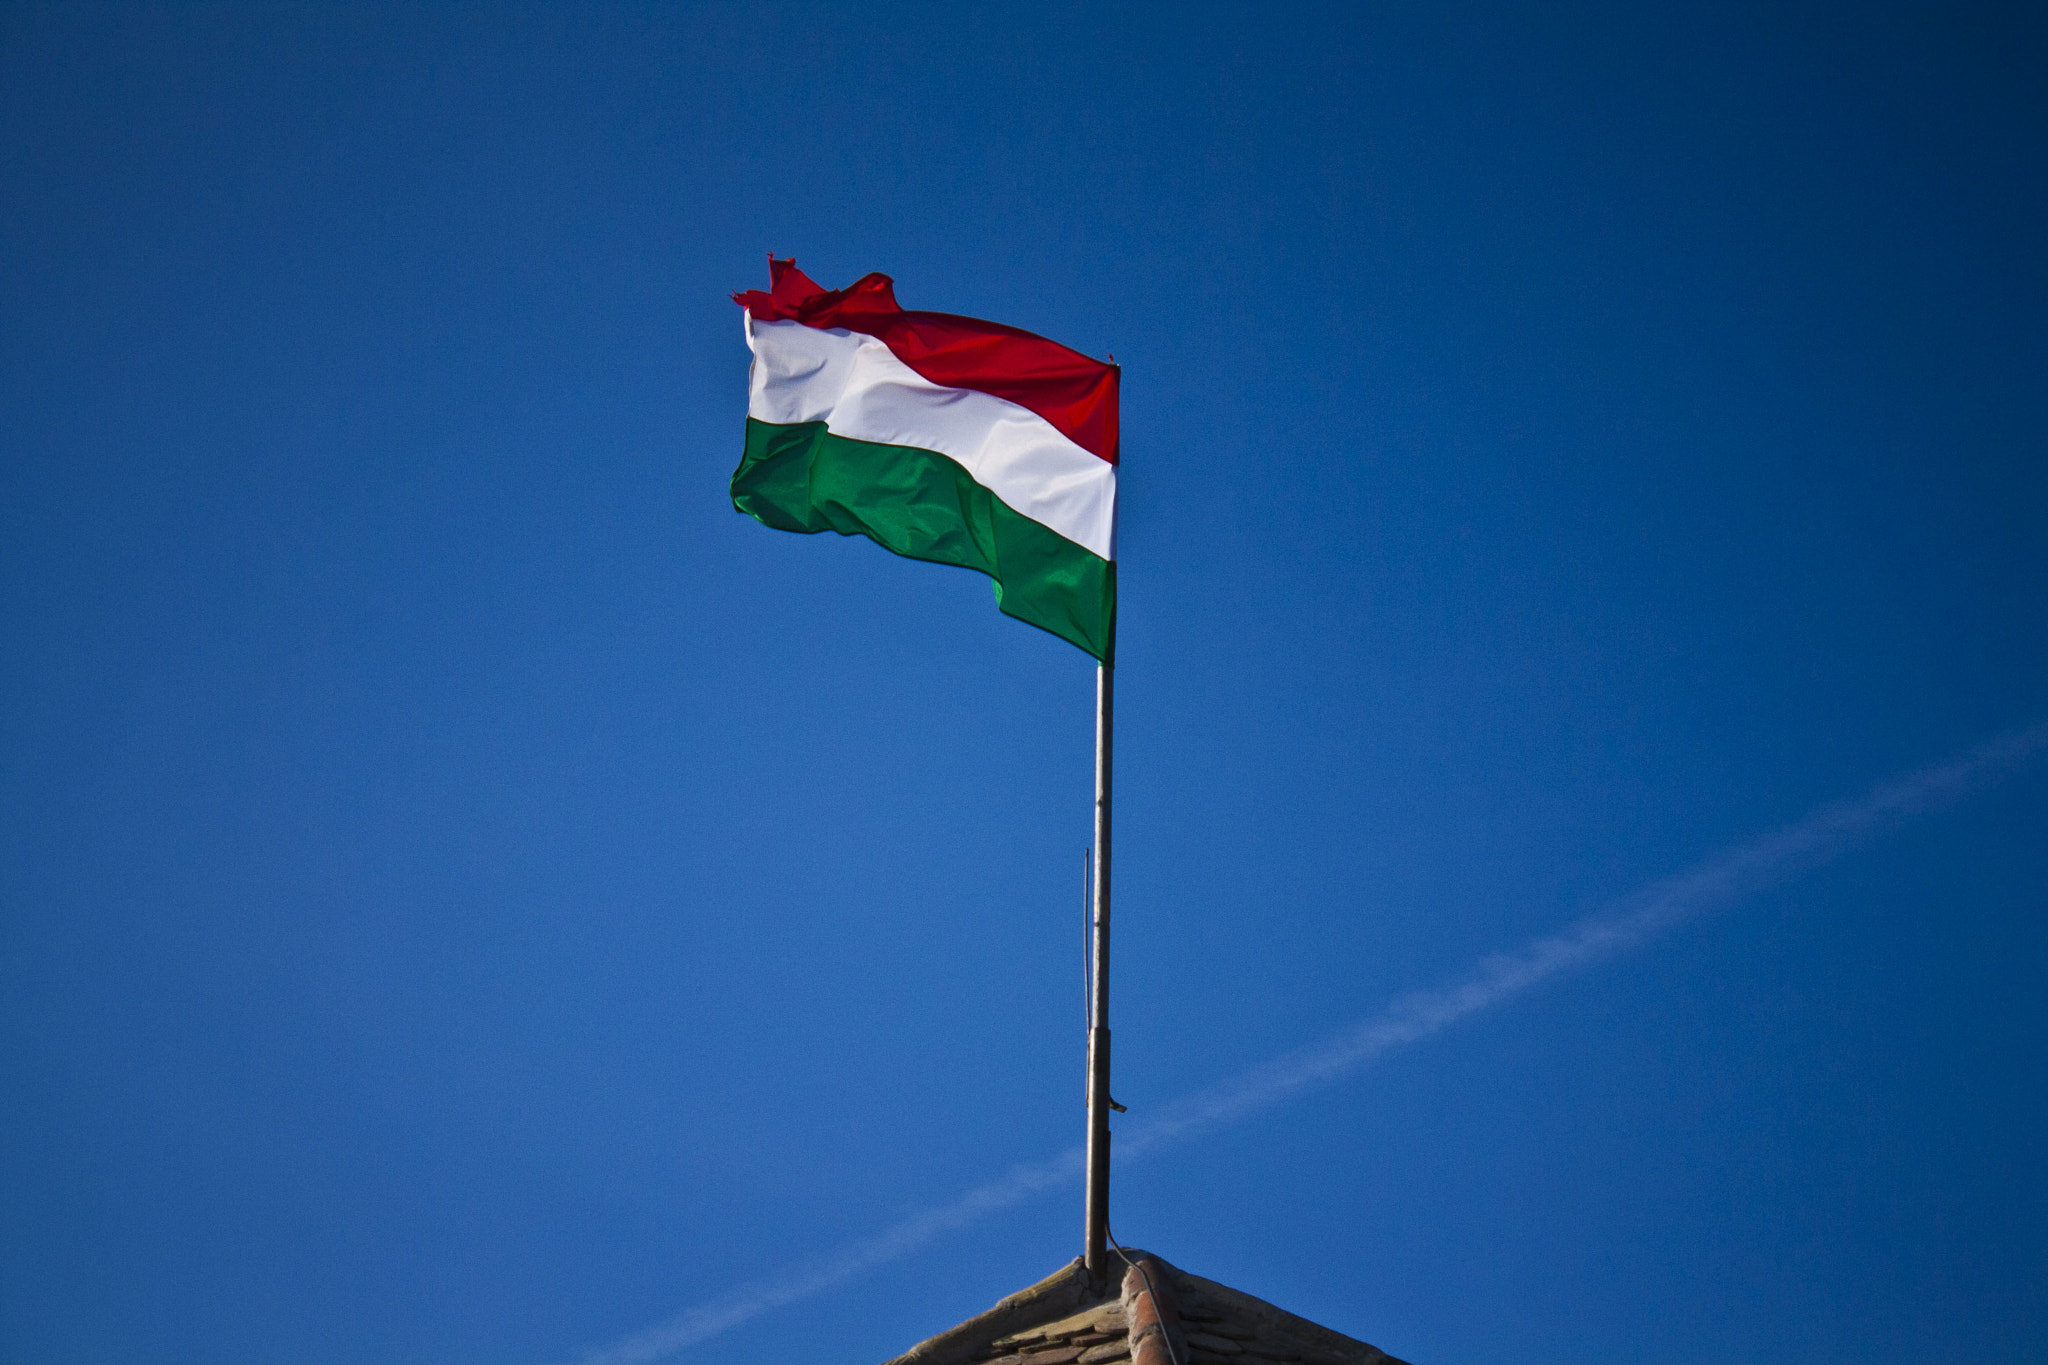 Photograph The Hungarian flag:) by Zsolt Berkes on 500px